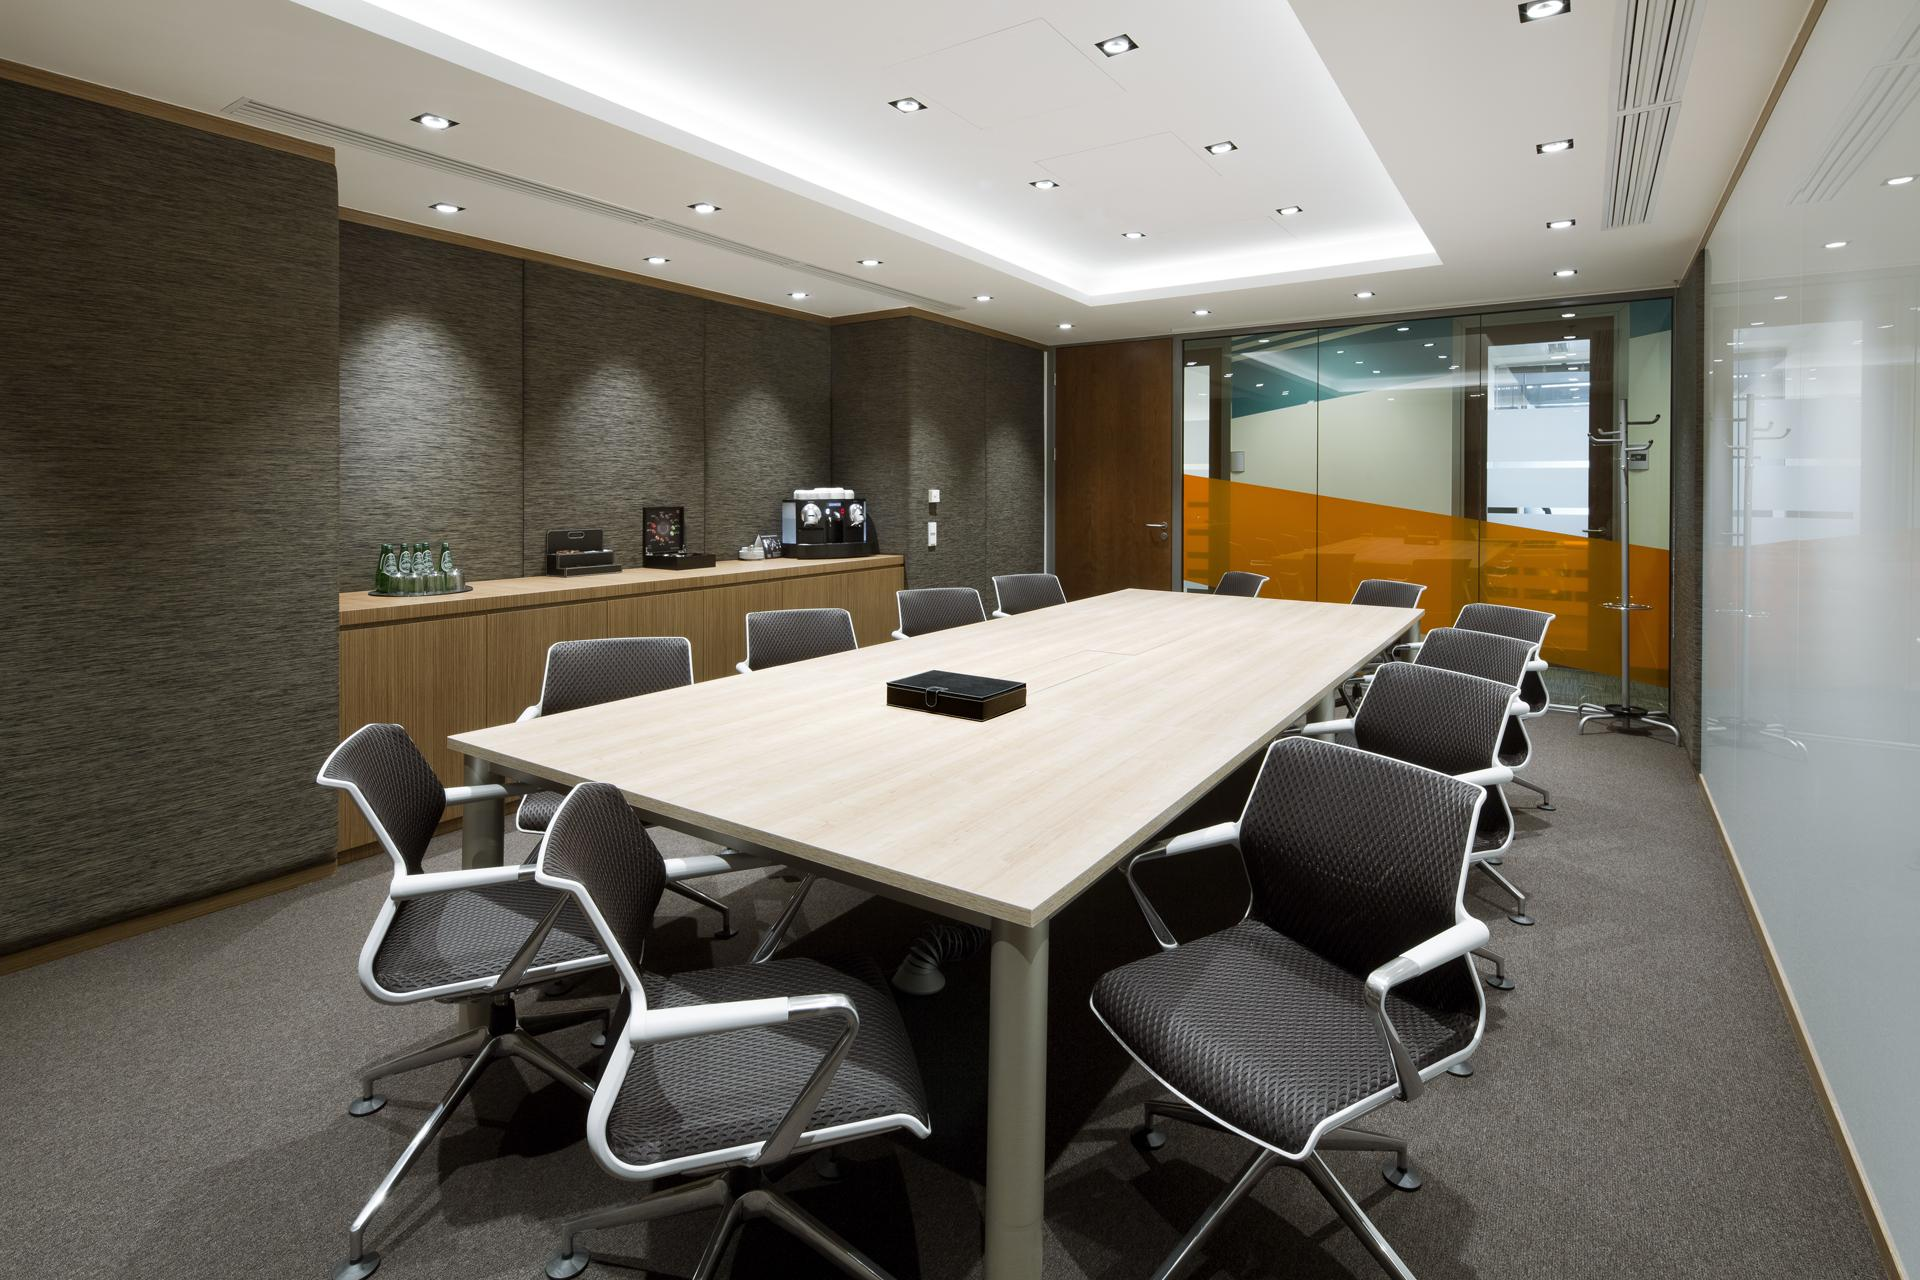 Meeting room for 12 pers. in CitySpace Rondo 1